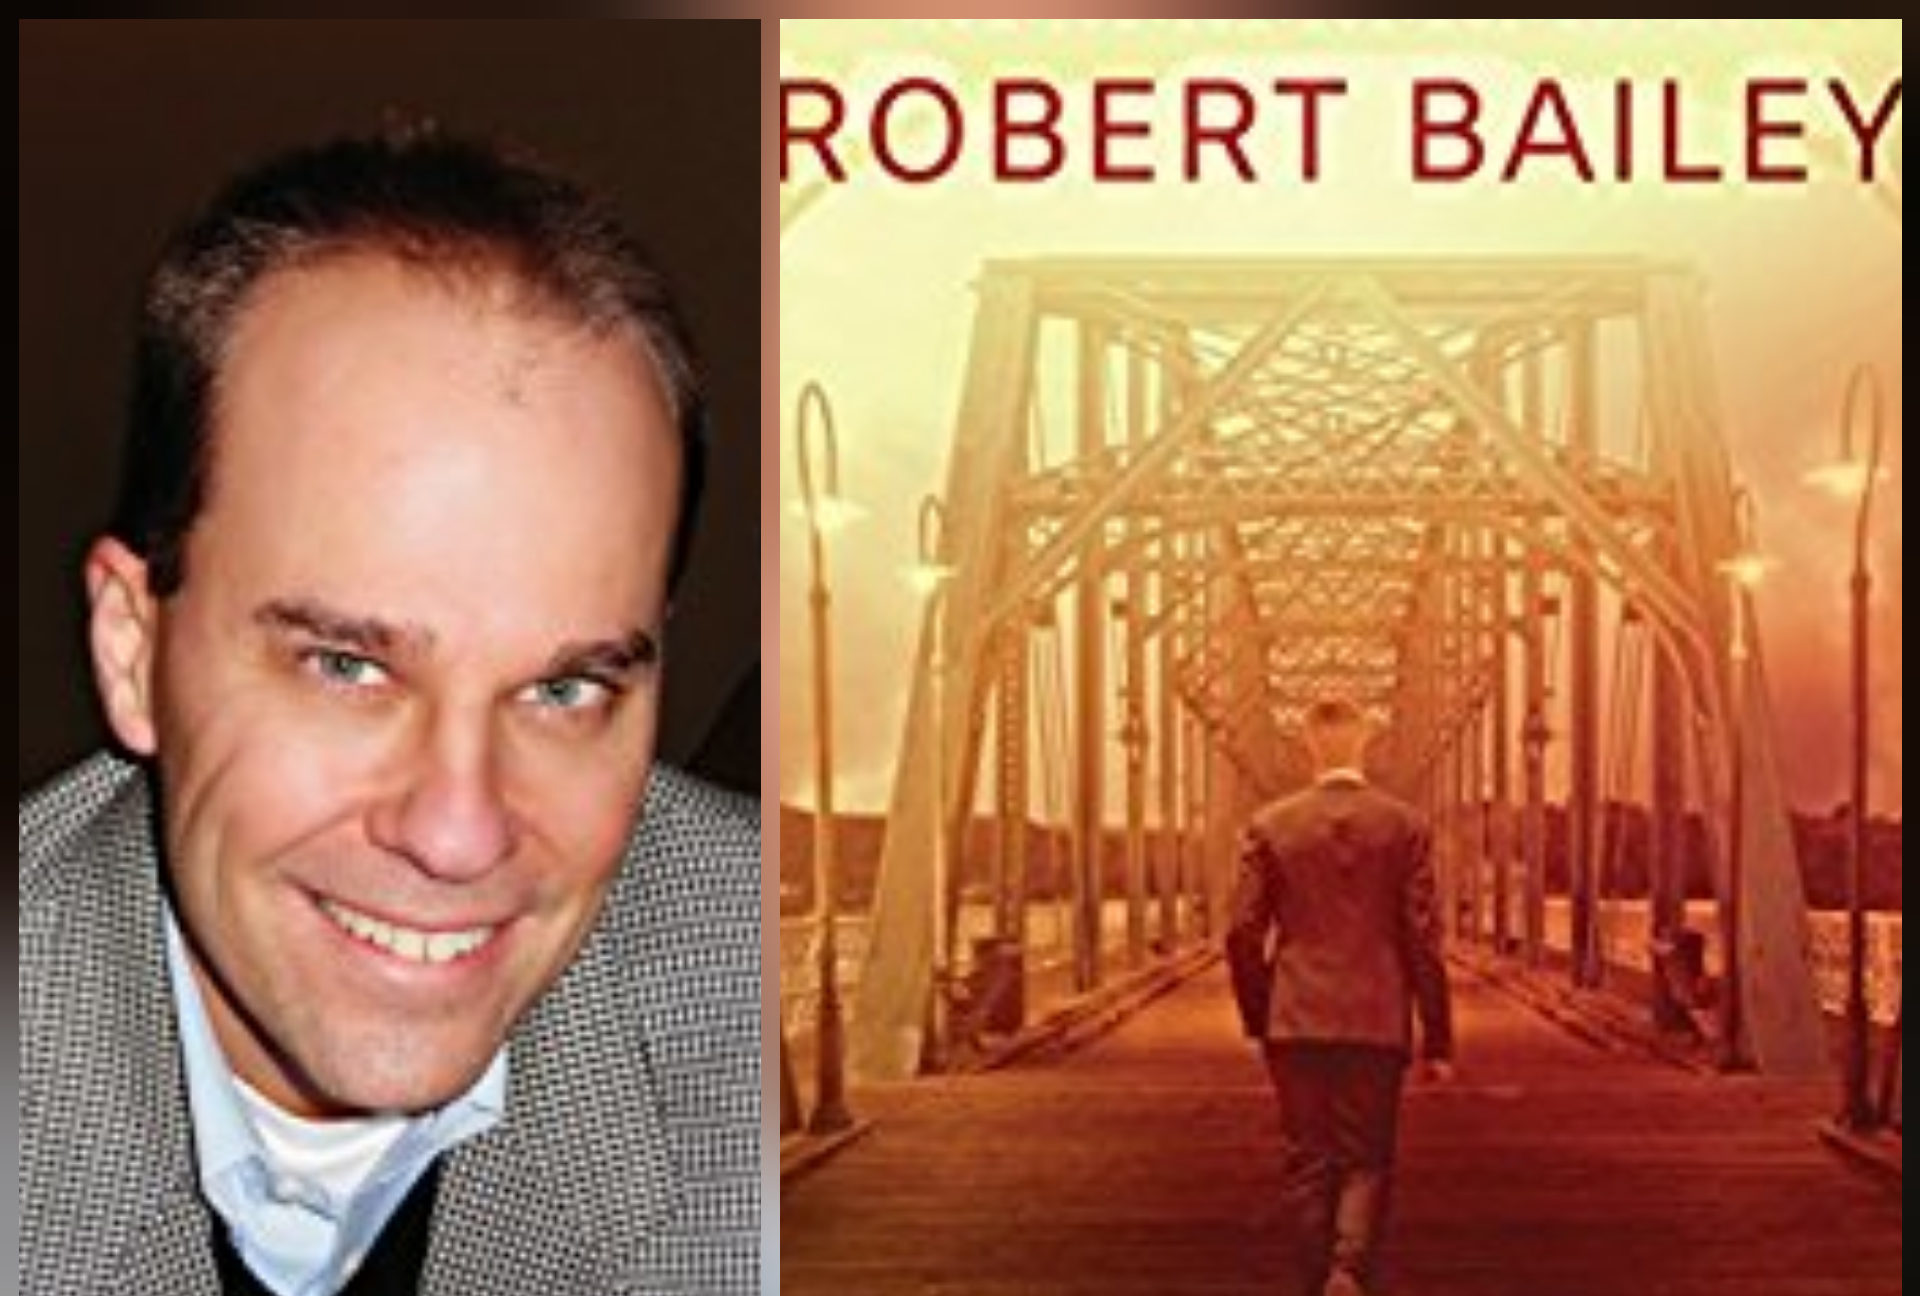 Legal thriller author to visit Trussville Public Library for book signing